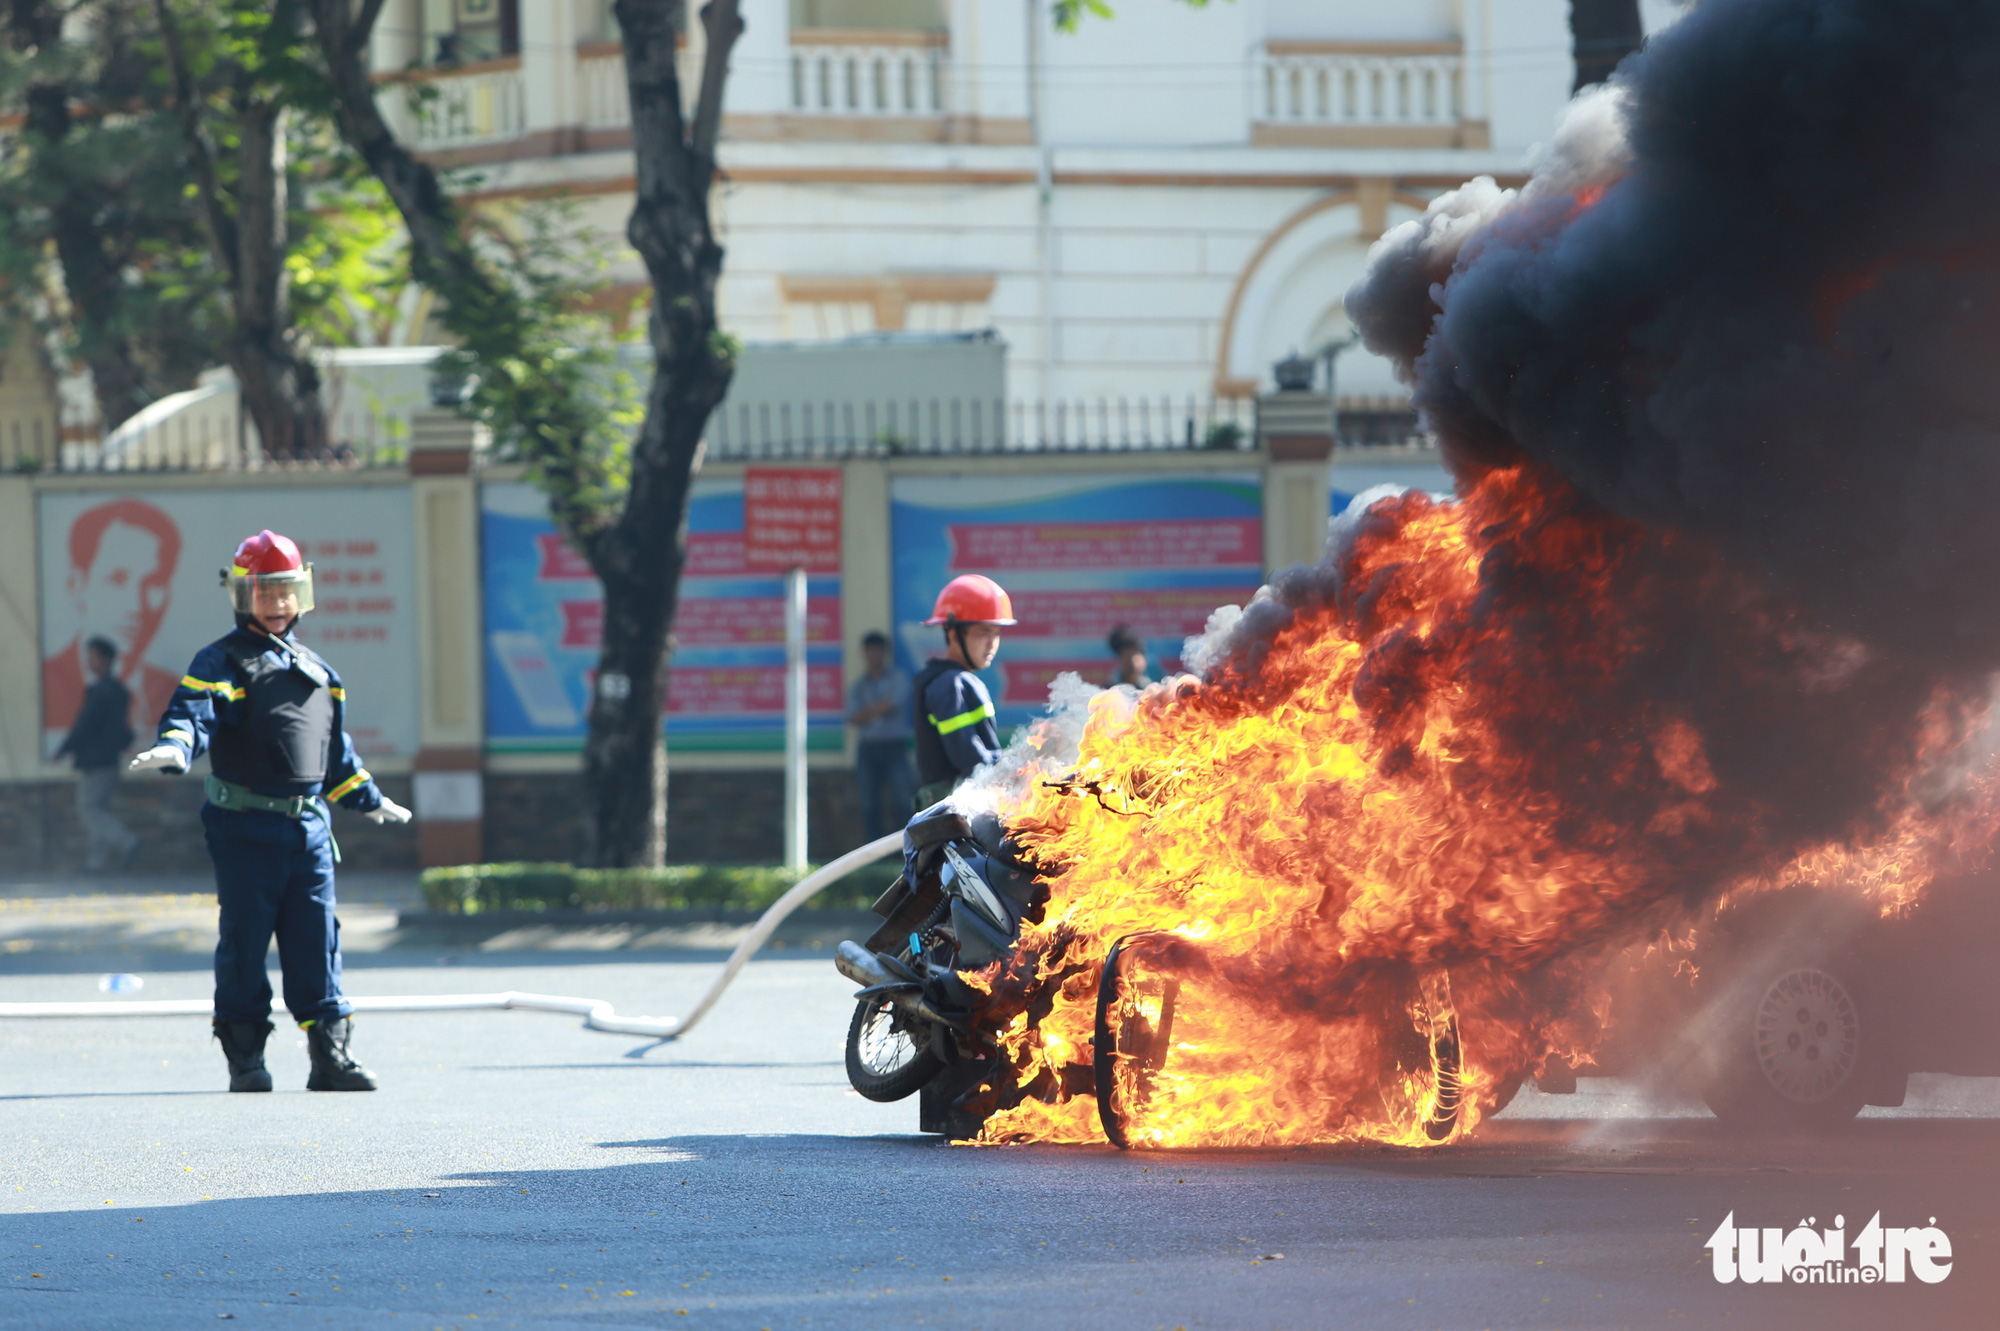 Firefighters put out a burning motorcycle.